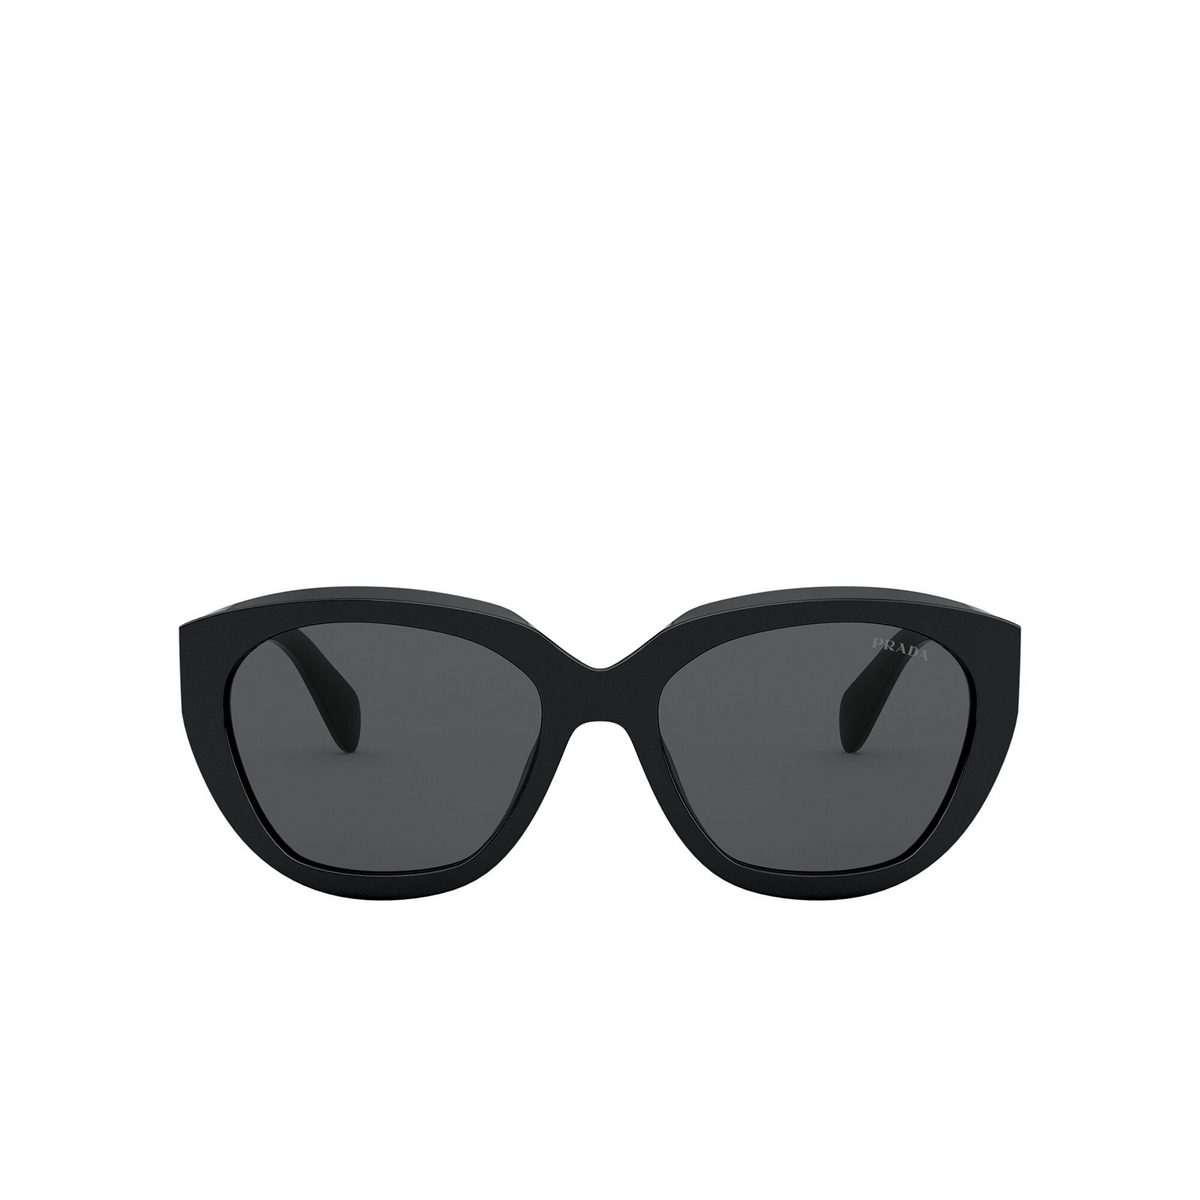 Prada® Butterfly Sunglasses: PR 16XS color Black 1AB5S0 - front view.